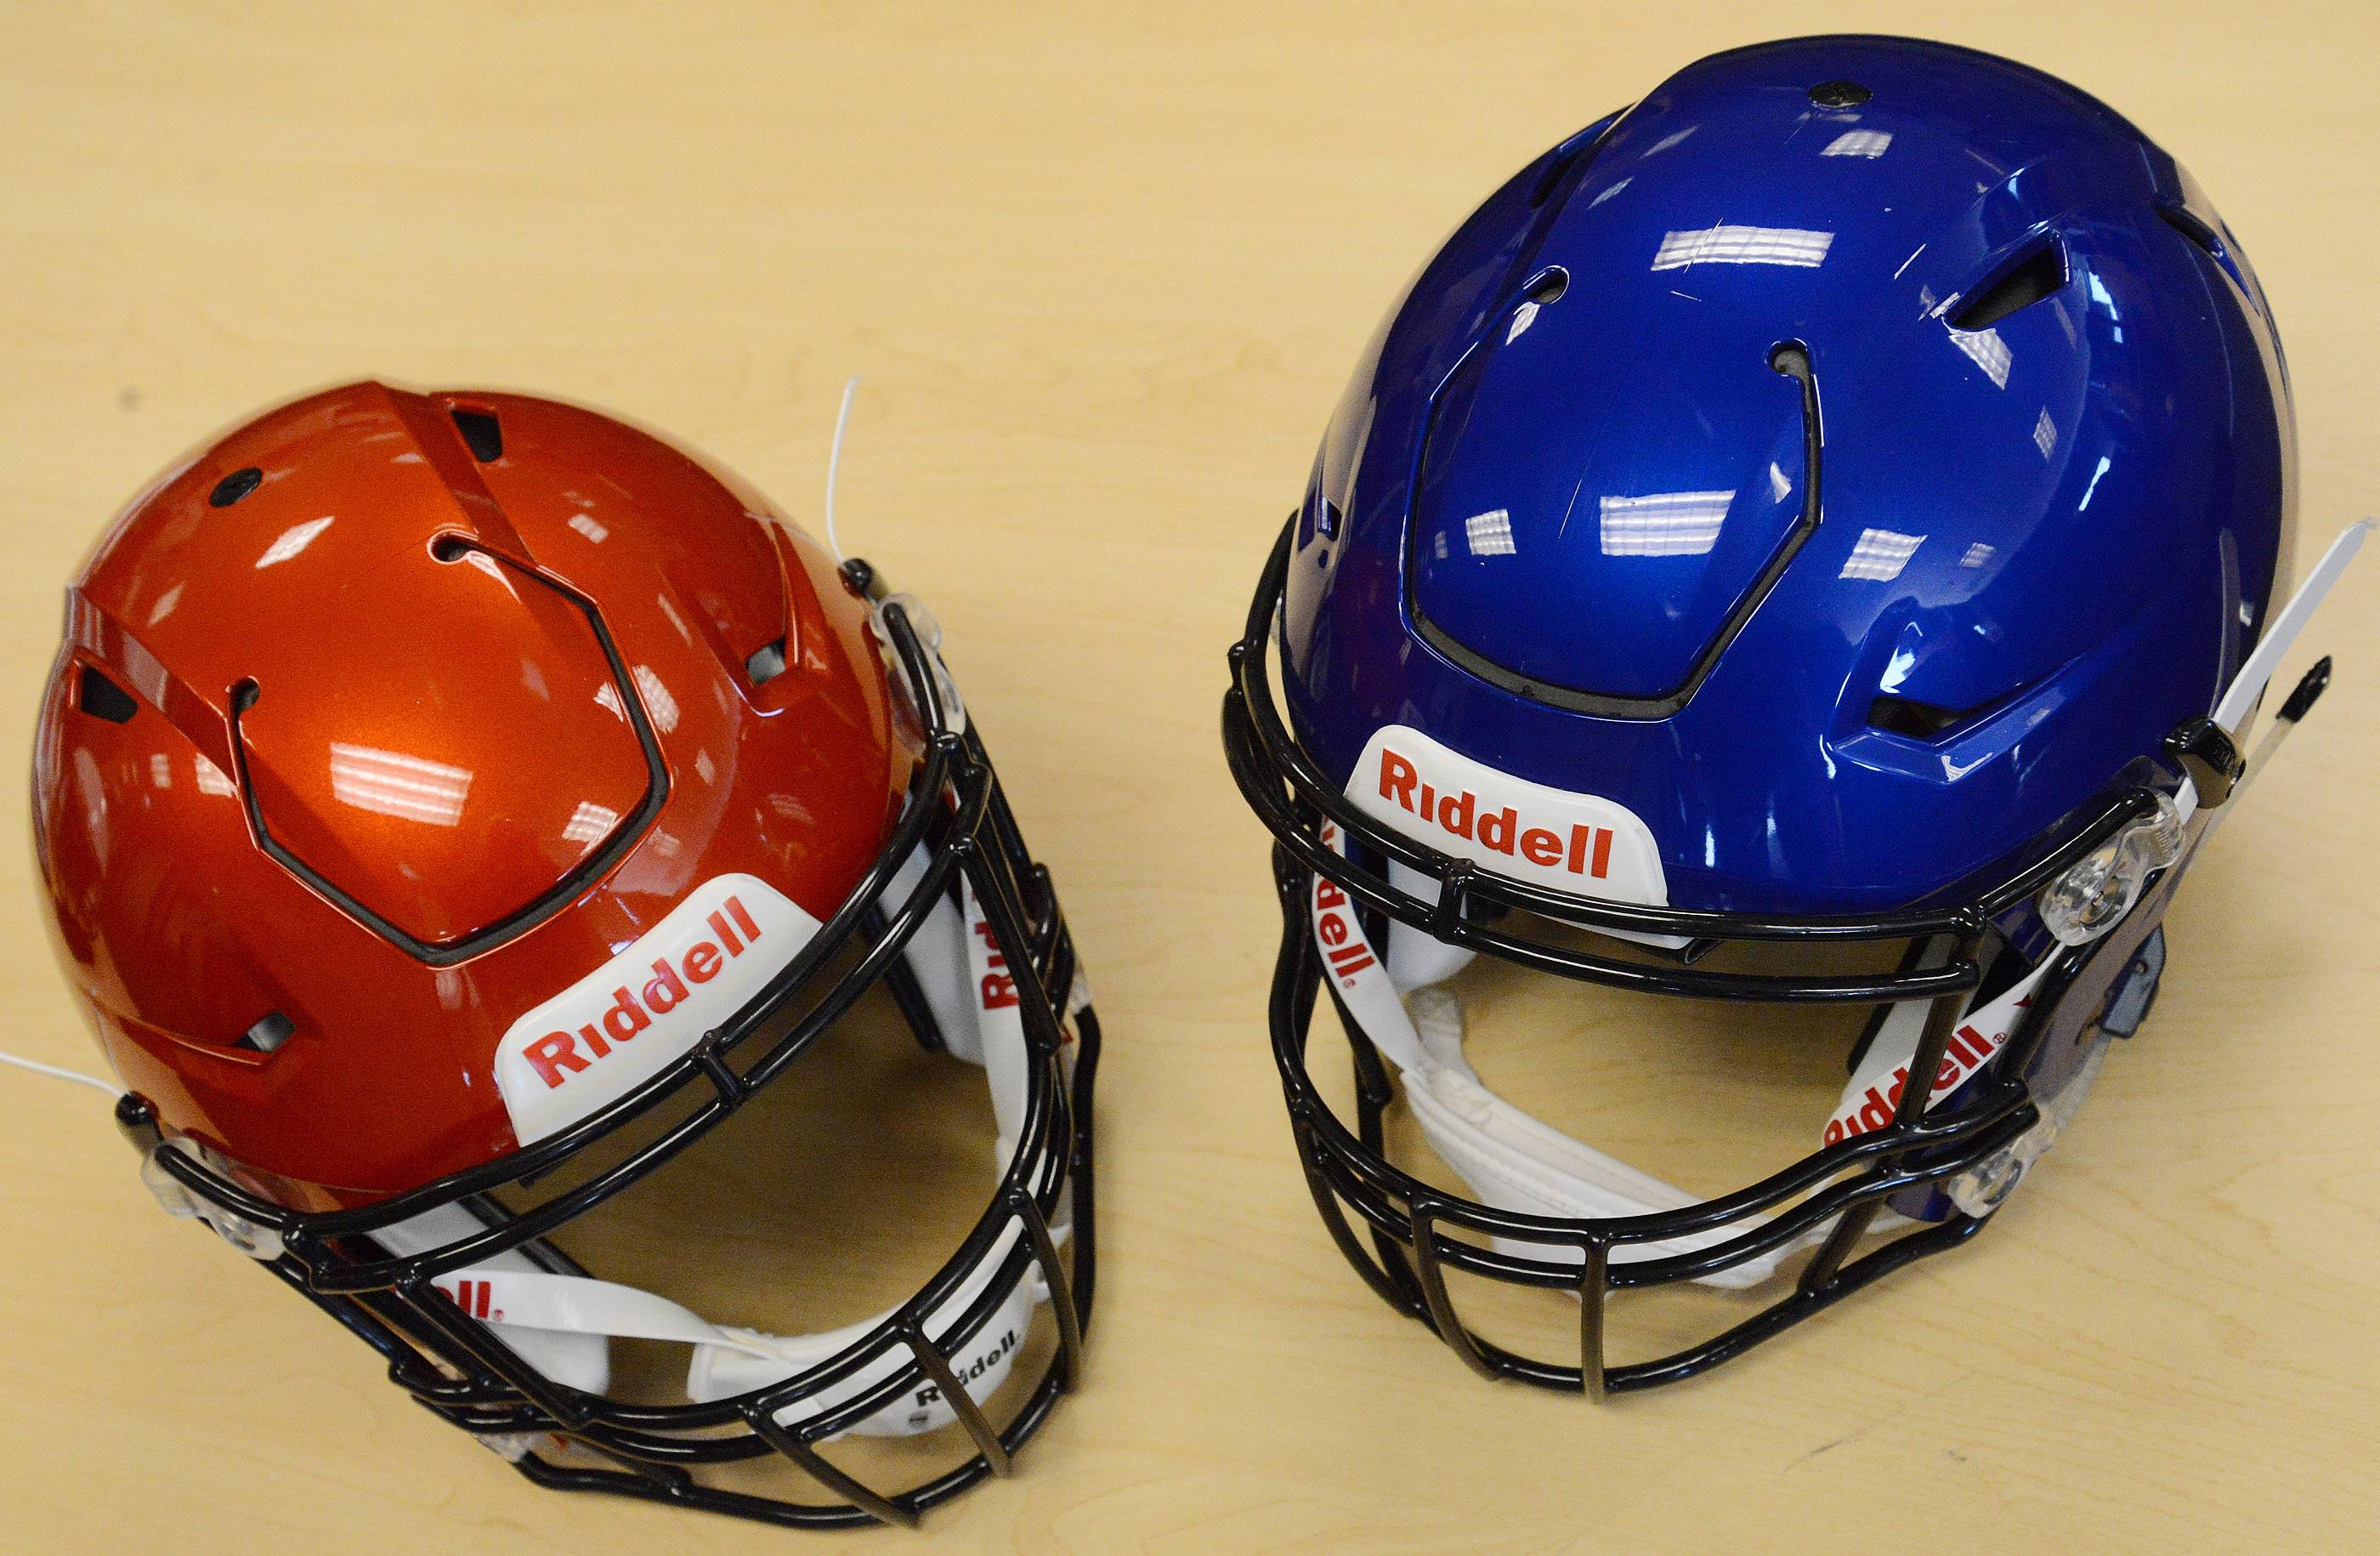 Football helmet maker Riddell to move from Rosemont to Des Plaines